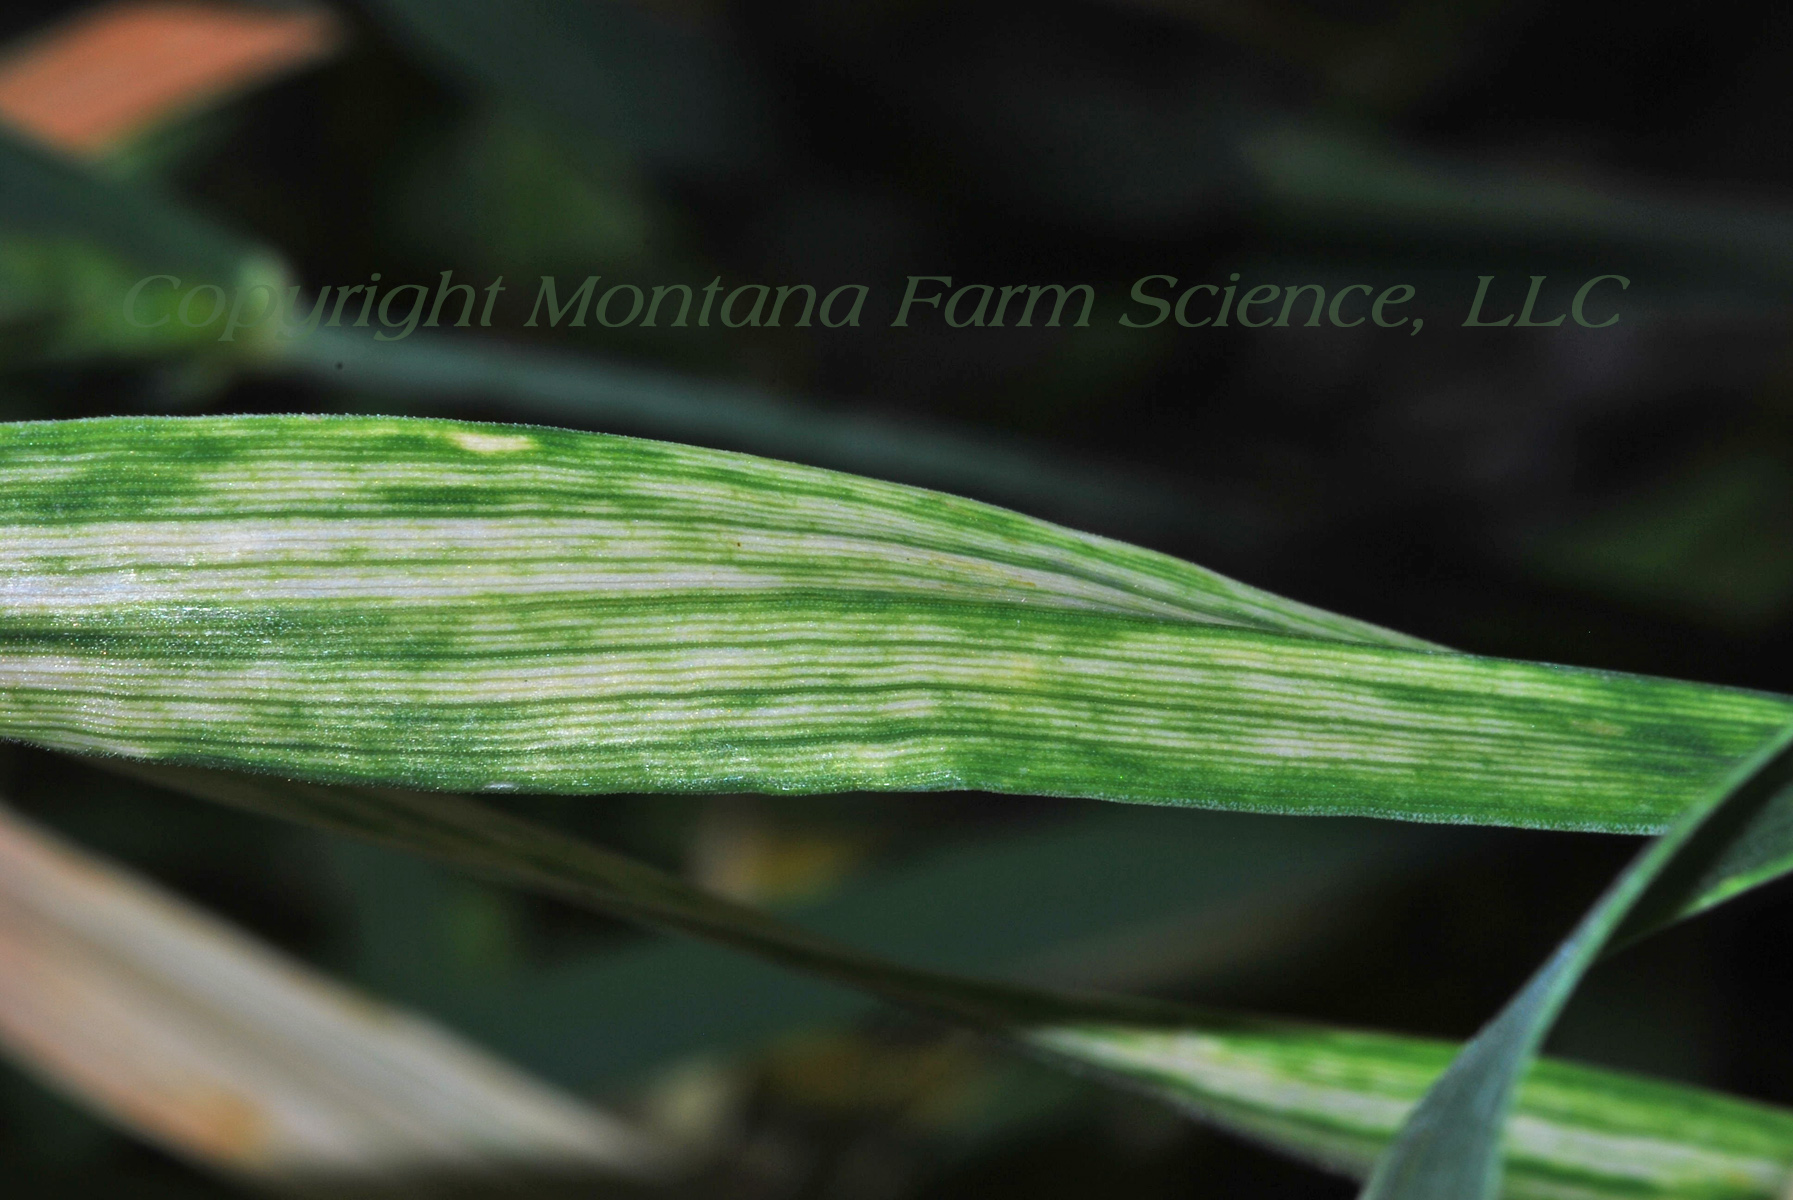 Wheat Streak Mosaic Virus (WSMV)